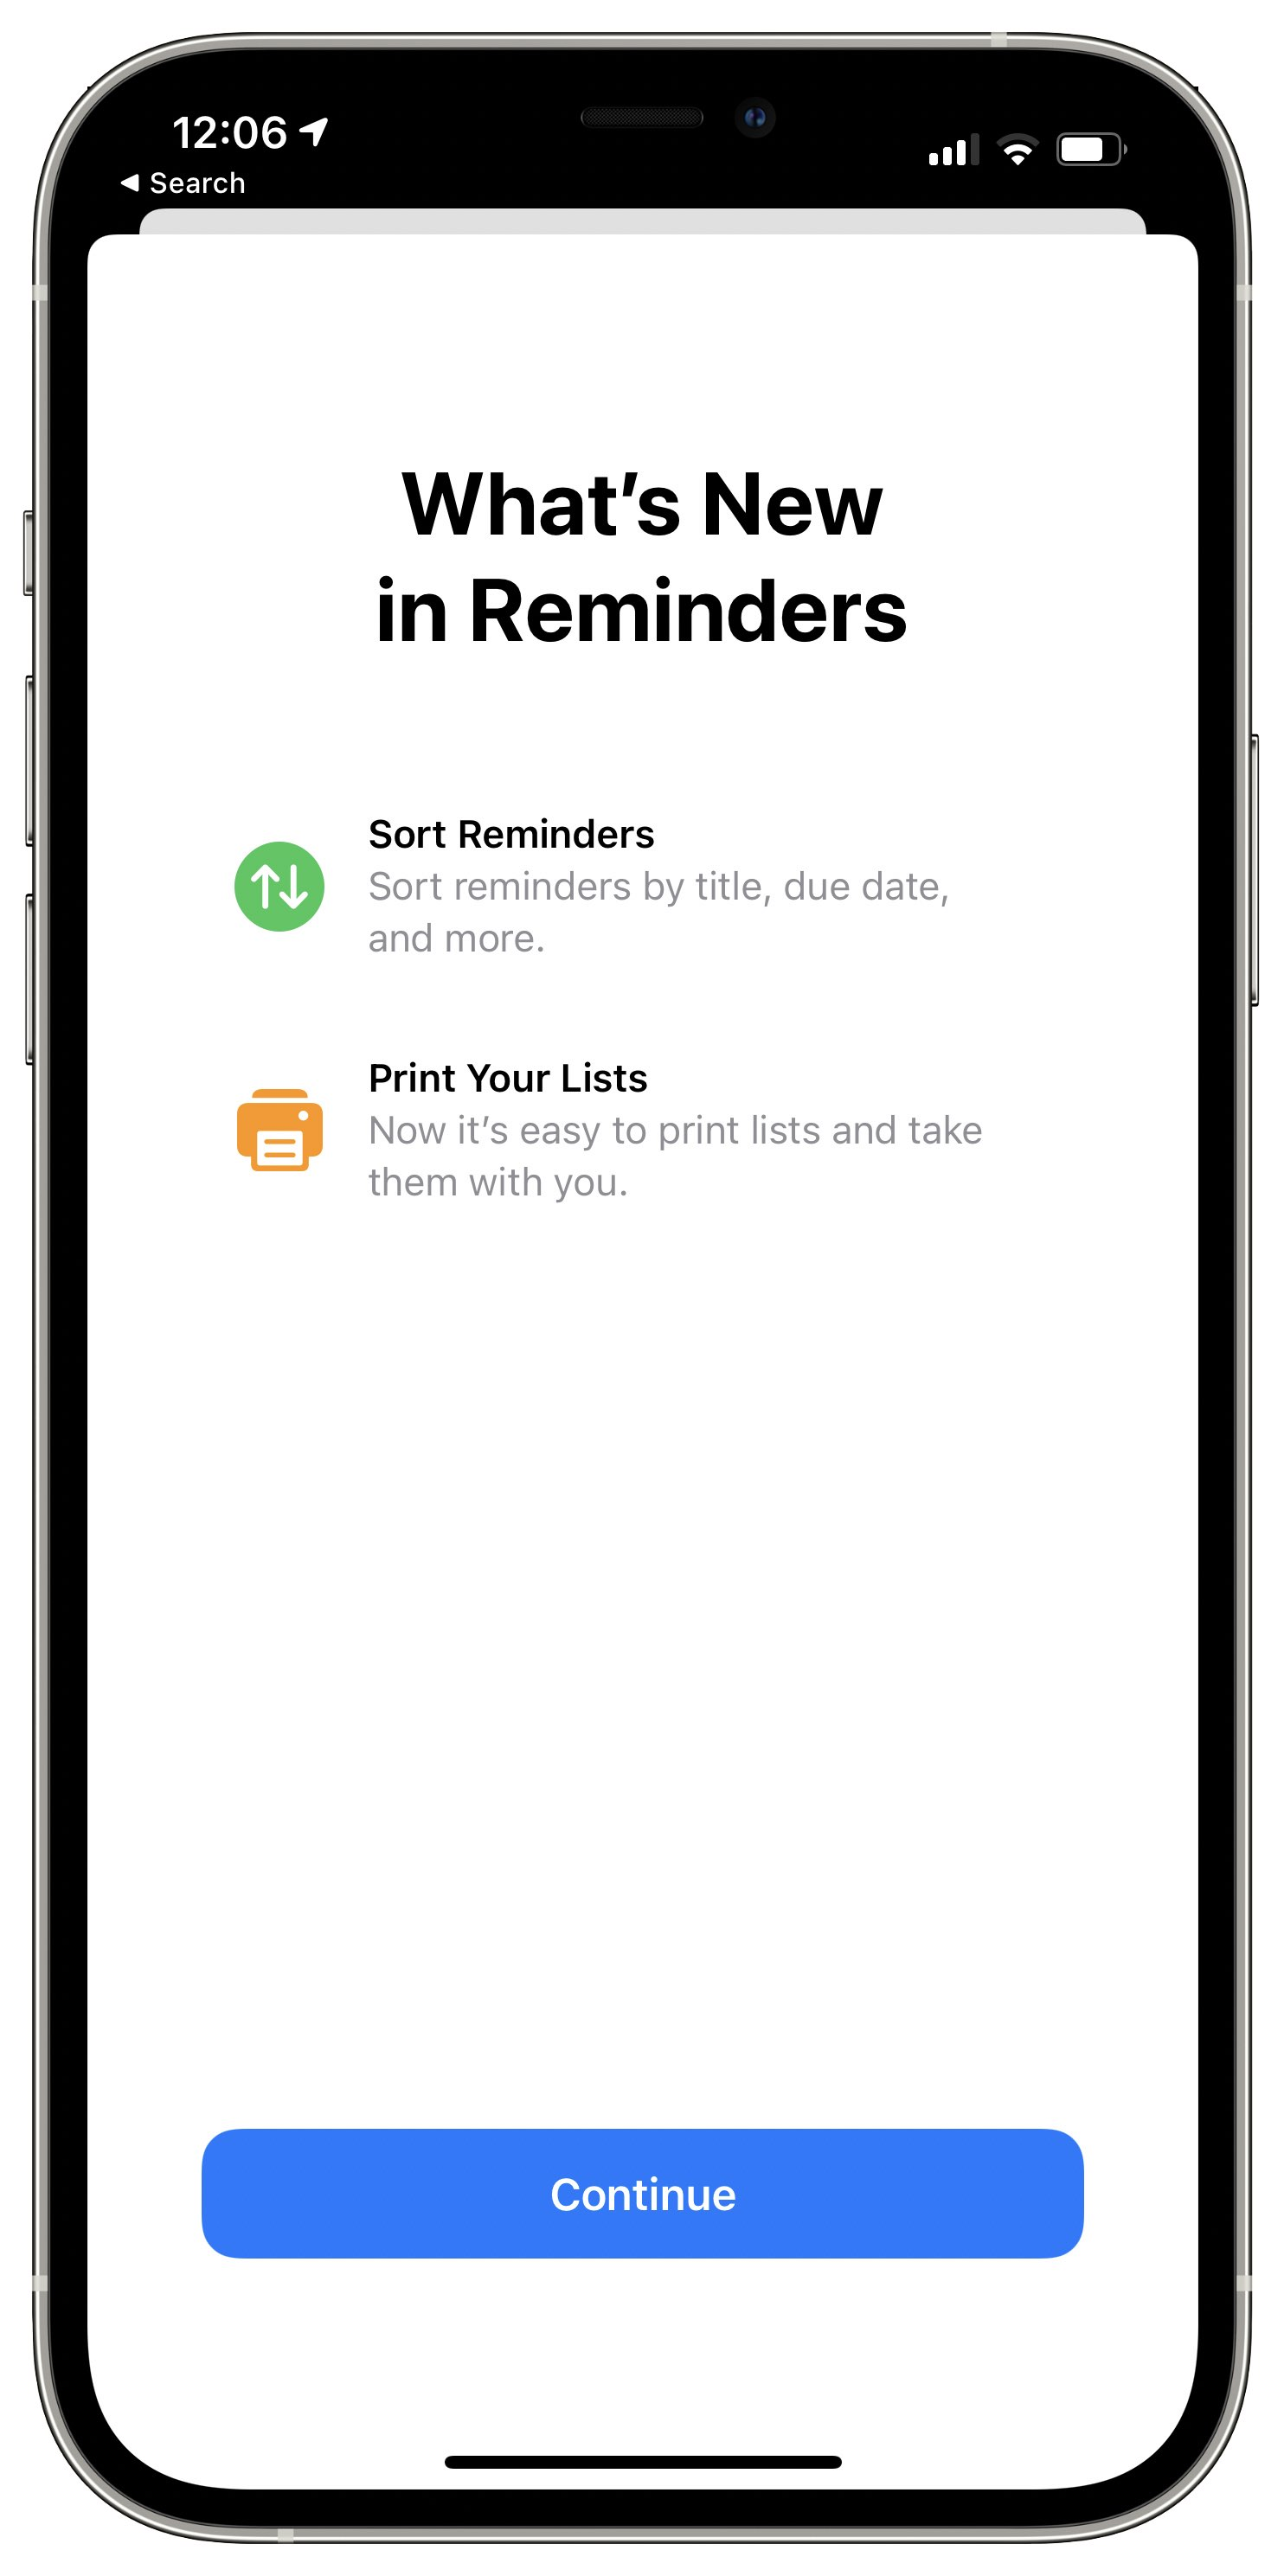 An iPhone screenshot of the Apple Reminders app on iOS 14.5 displaying the splash screen with new sorting options